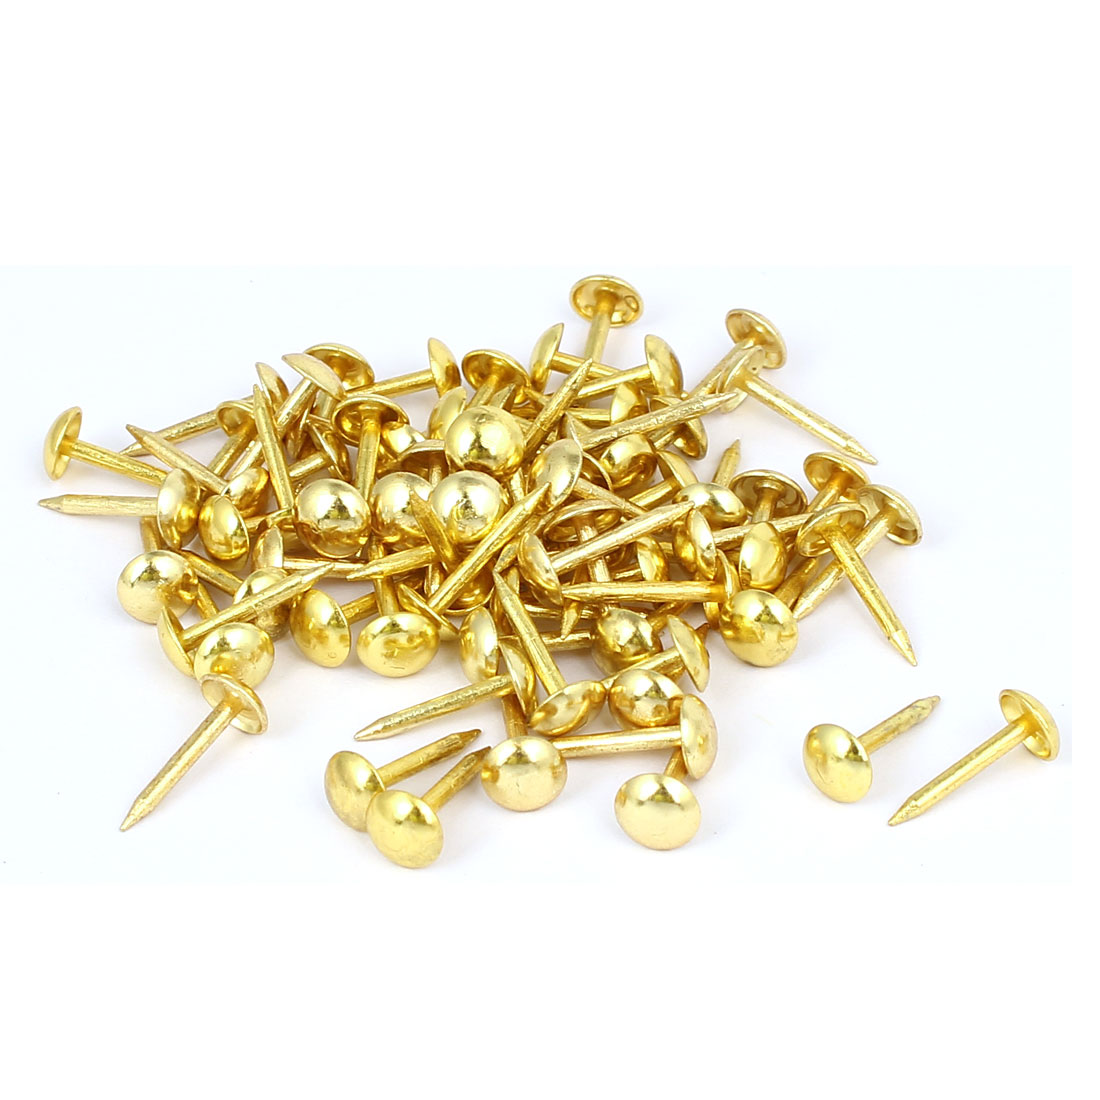 Home Furniture Upholstery Thumb Tack Nail Push Pin Gold Tone 6mm x 14mm 80pcs